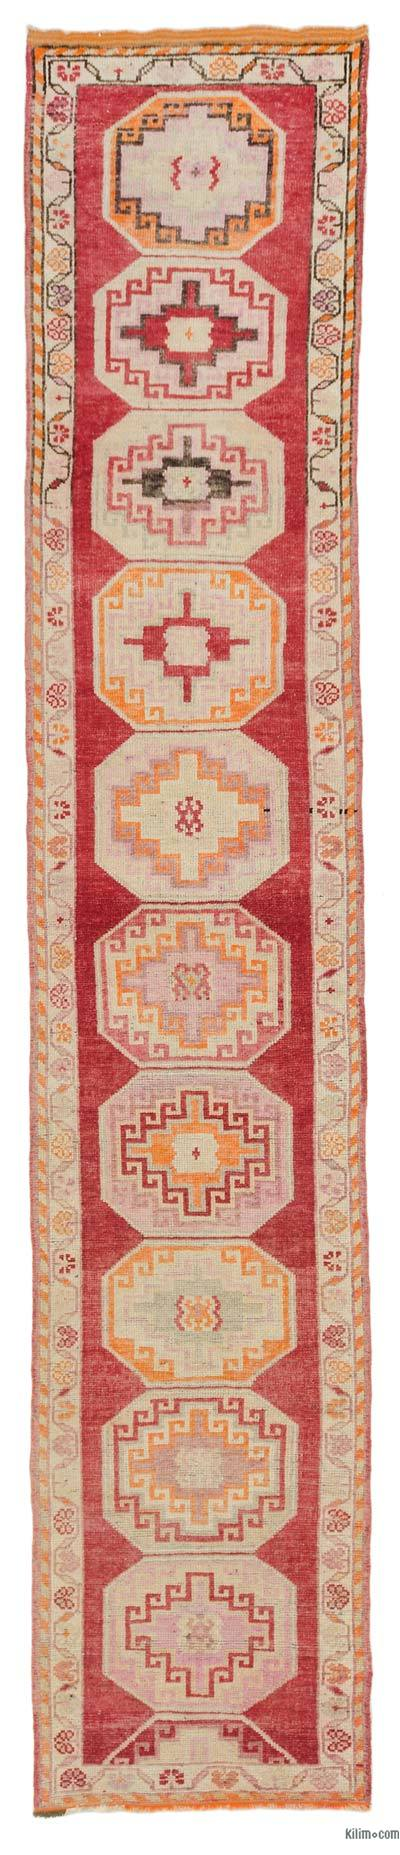 "Vintage Turkish Runner Rug - 2' 11"" x 15' 3"" (35 in. x 183 in.)"